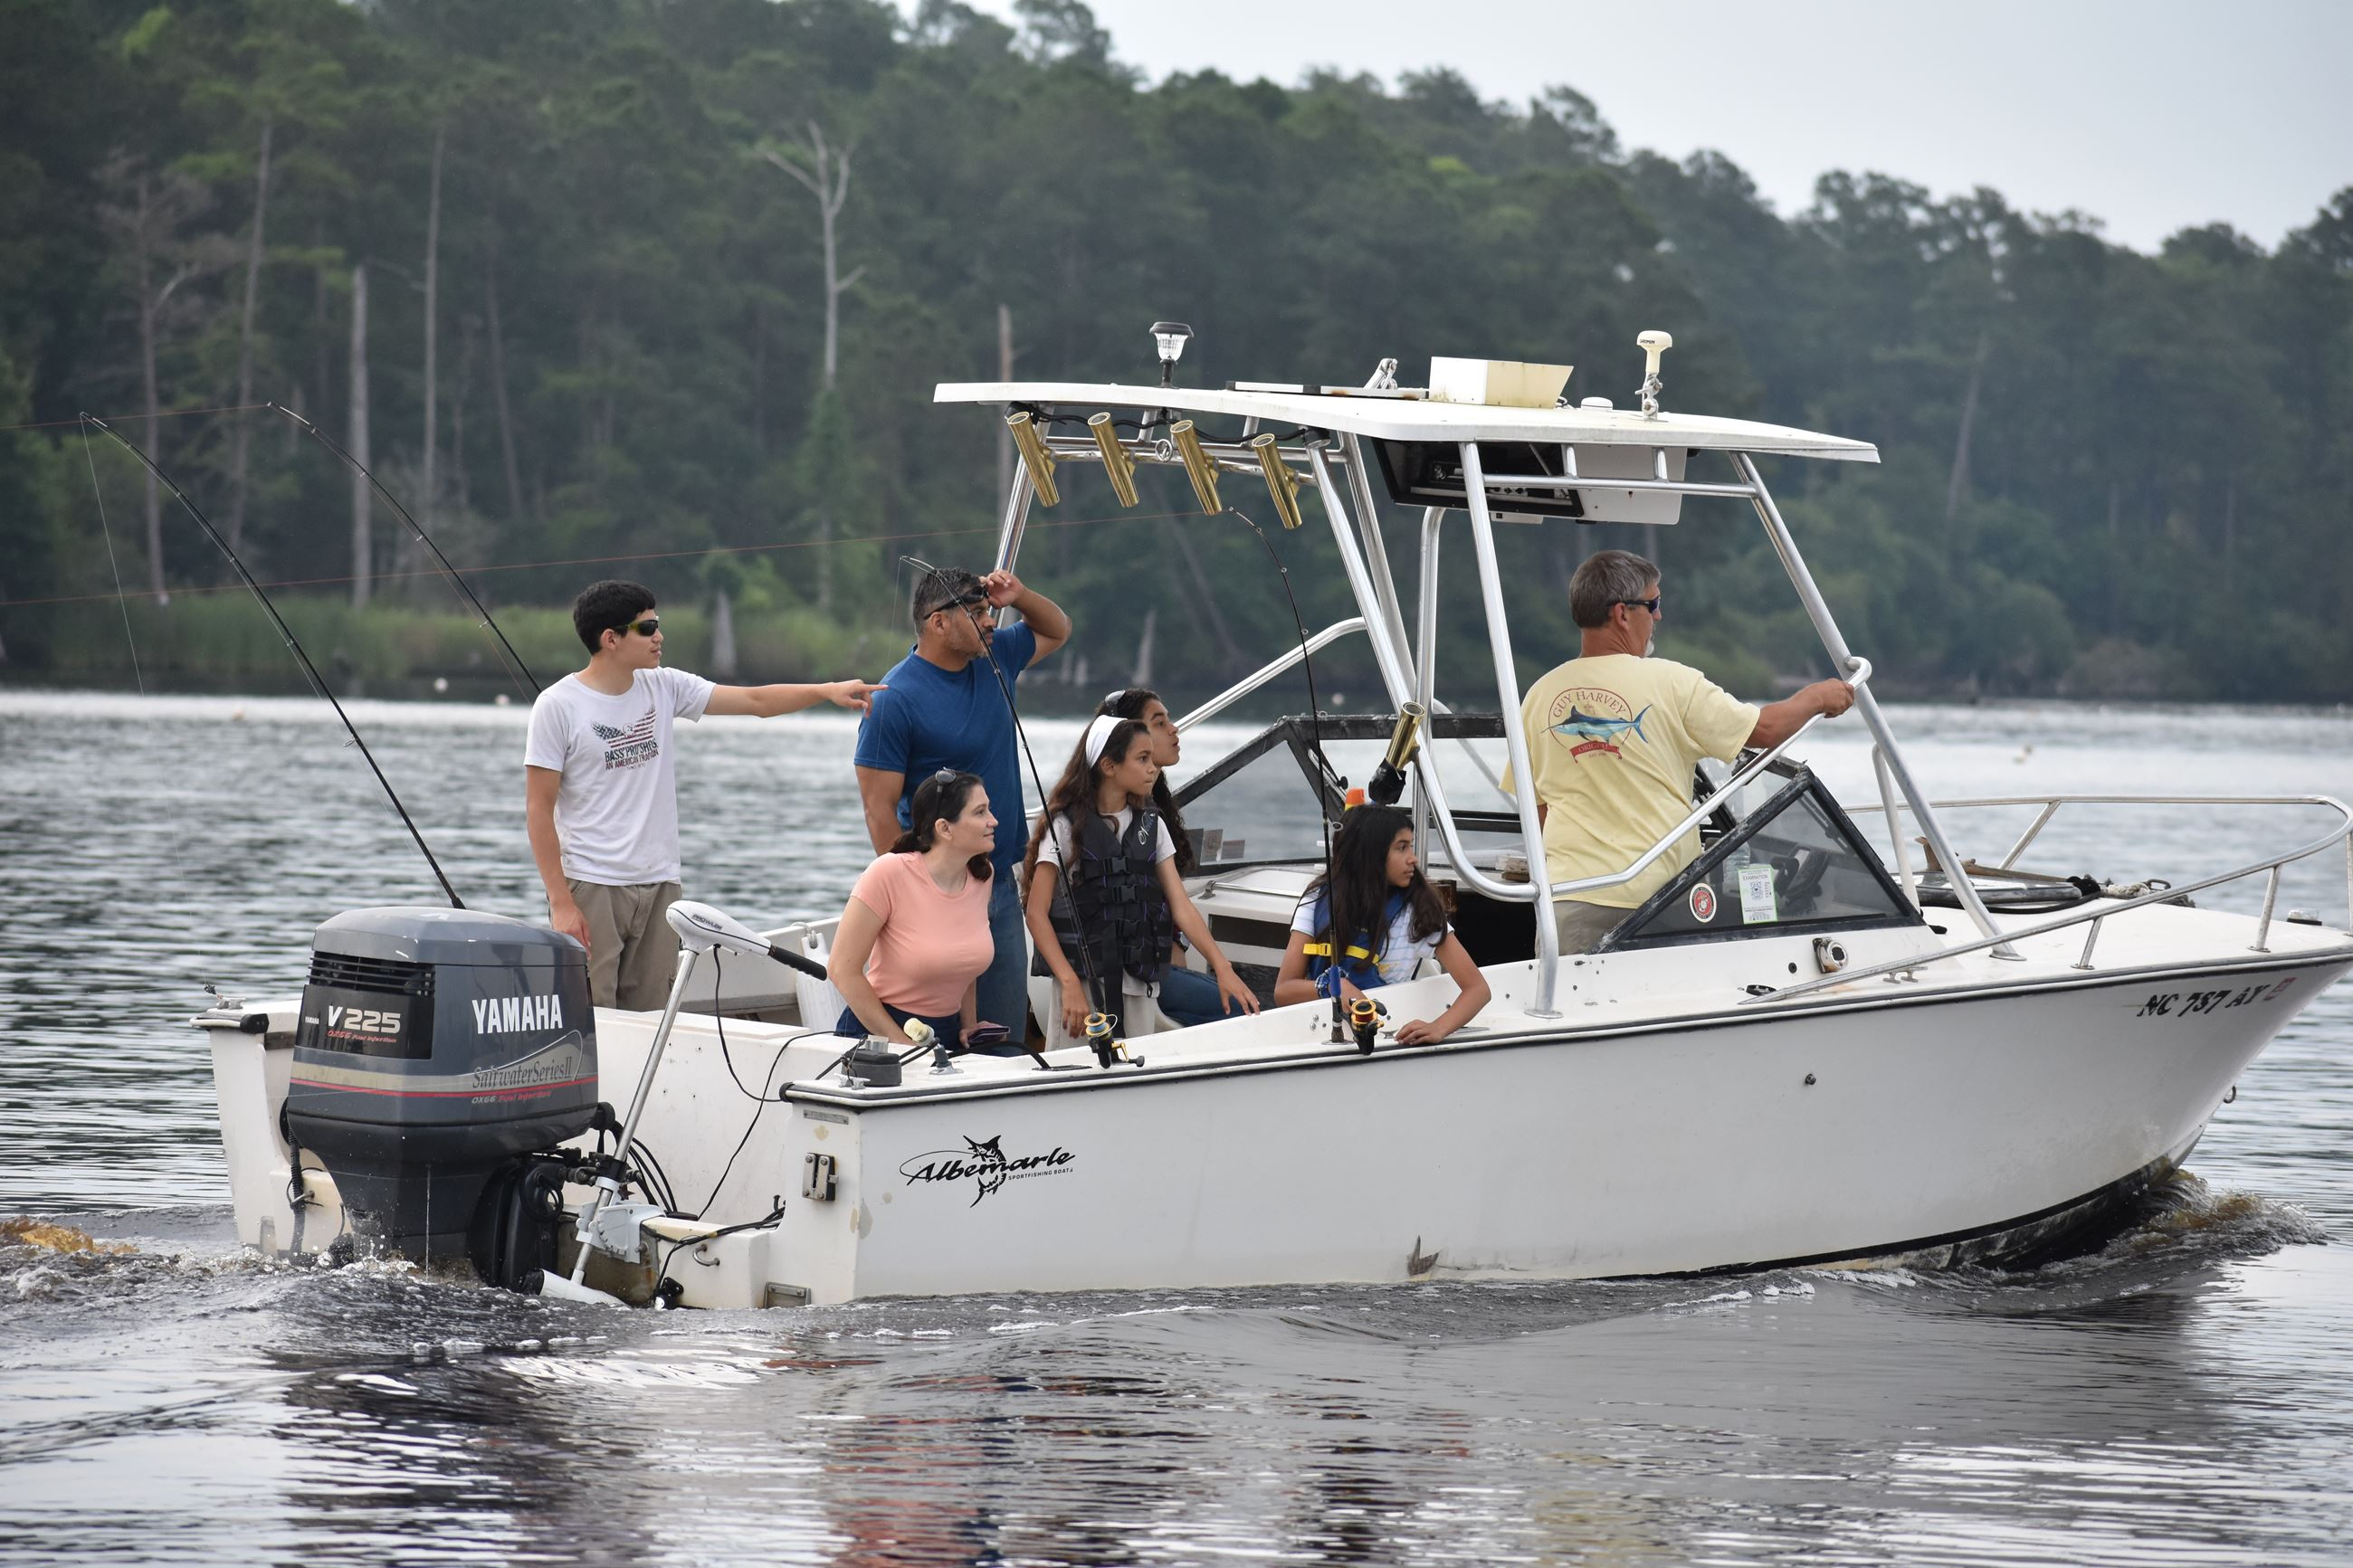 2018-06-14-VisitNC-PhotoNetwork-Fishing-KT-DSC_0747